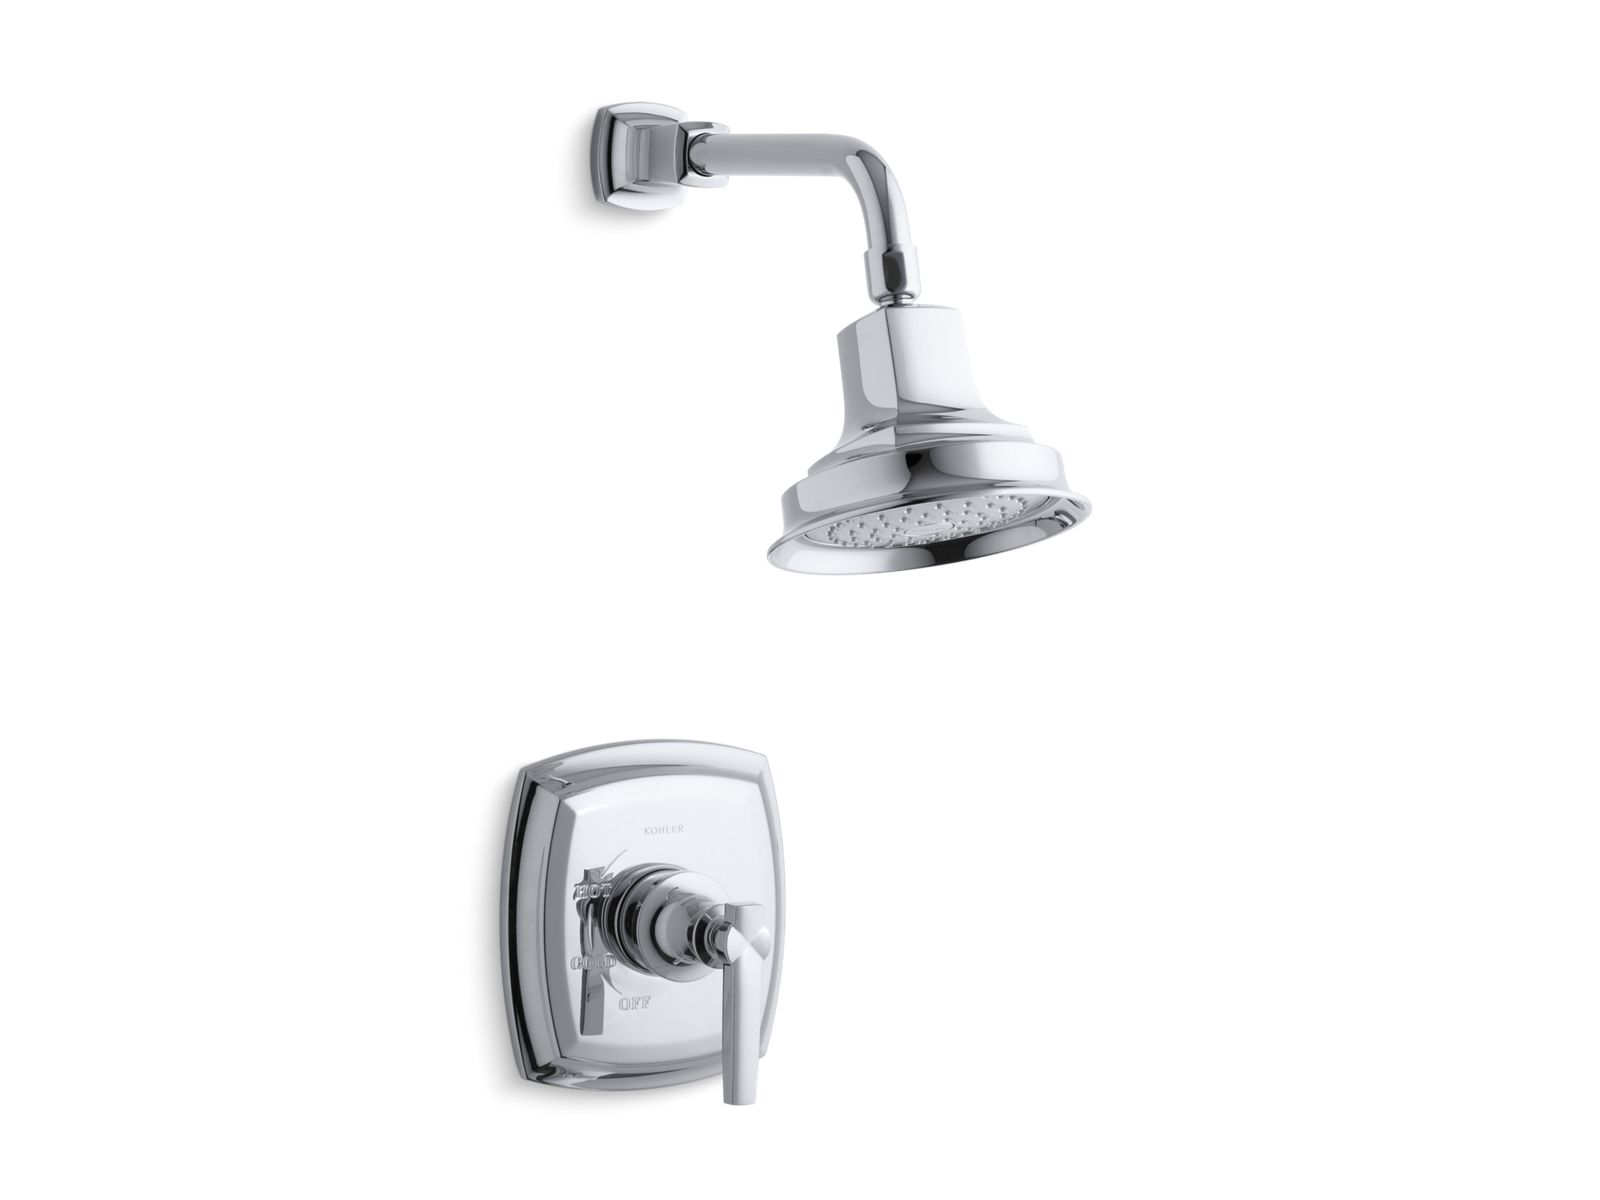 k ts16234 4 margaux rite temp shower valve trim with lever handle and 2 5 gpm showerhead kohler